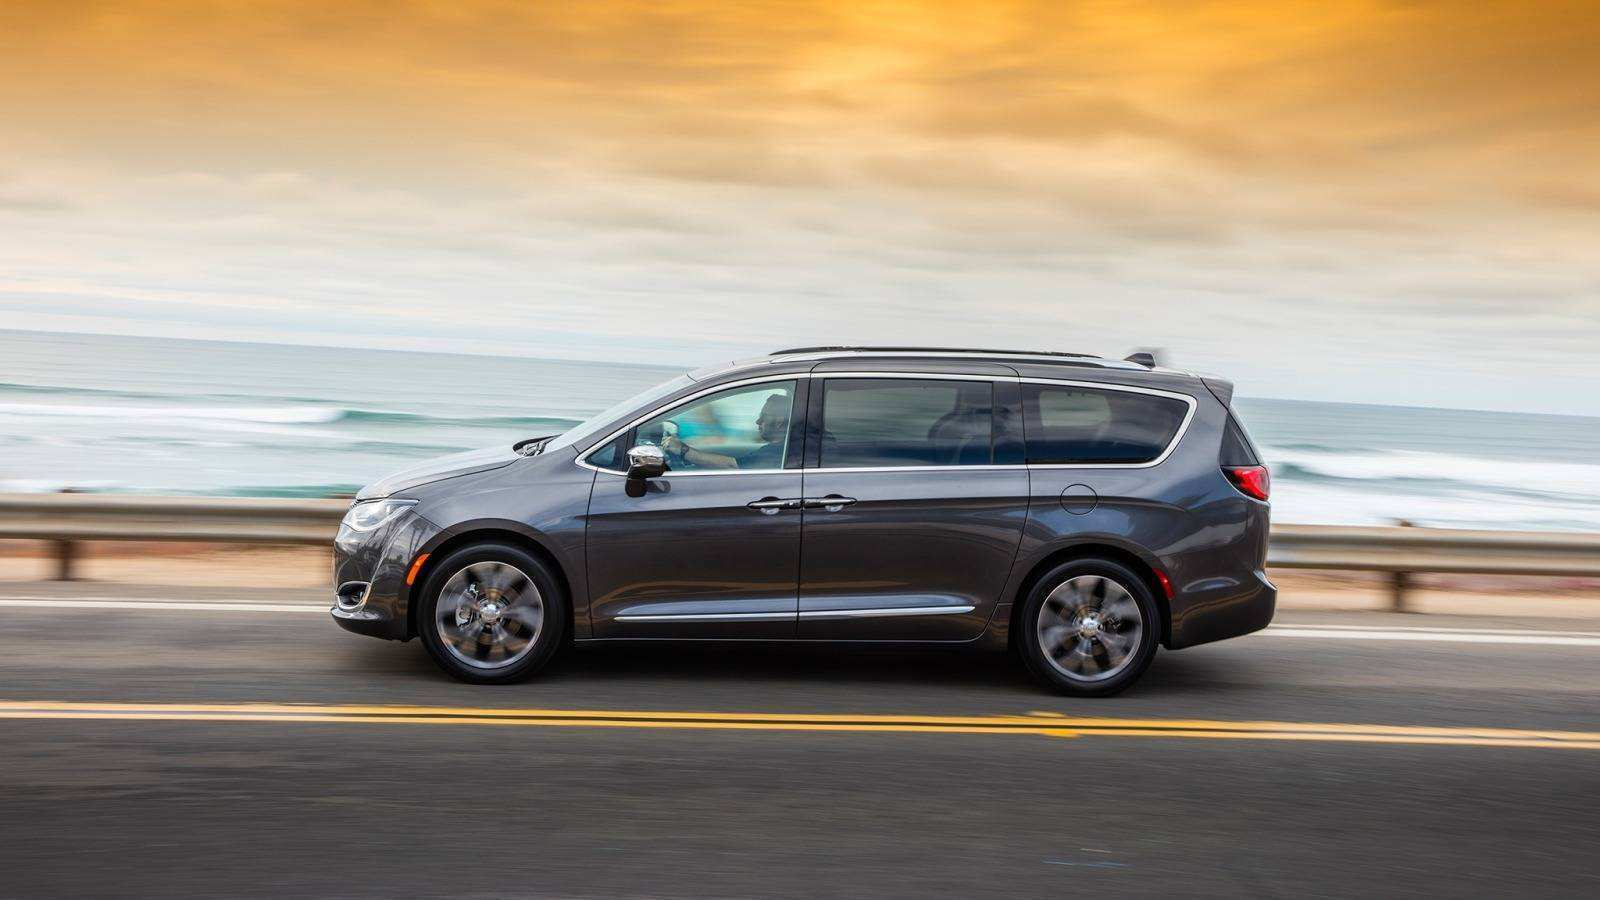 99 Gallery of 2019 Chrysler Pacifica Review Pricing for 2019 Chrysler Pacifica Review